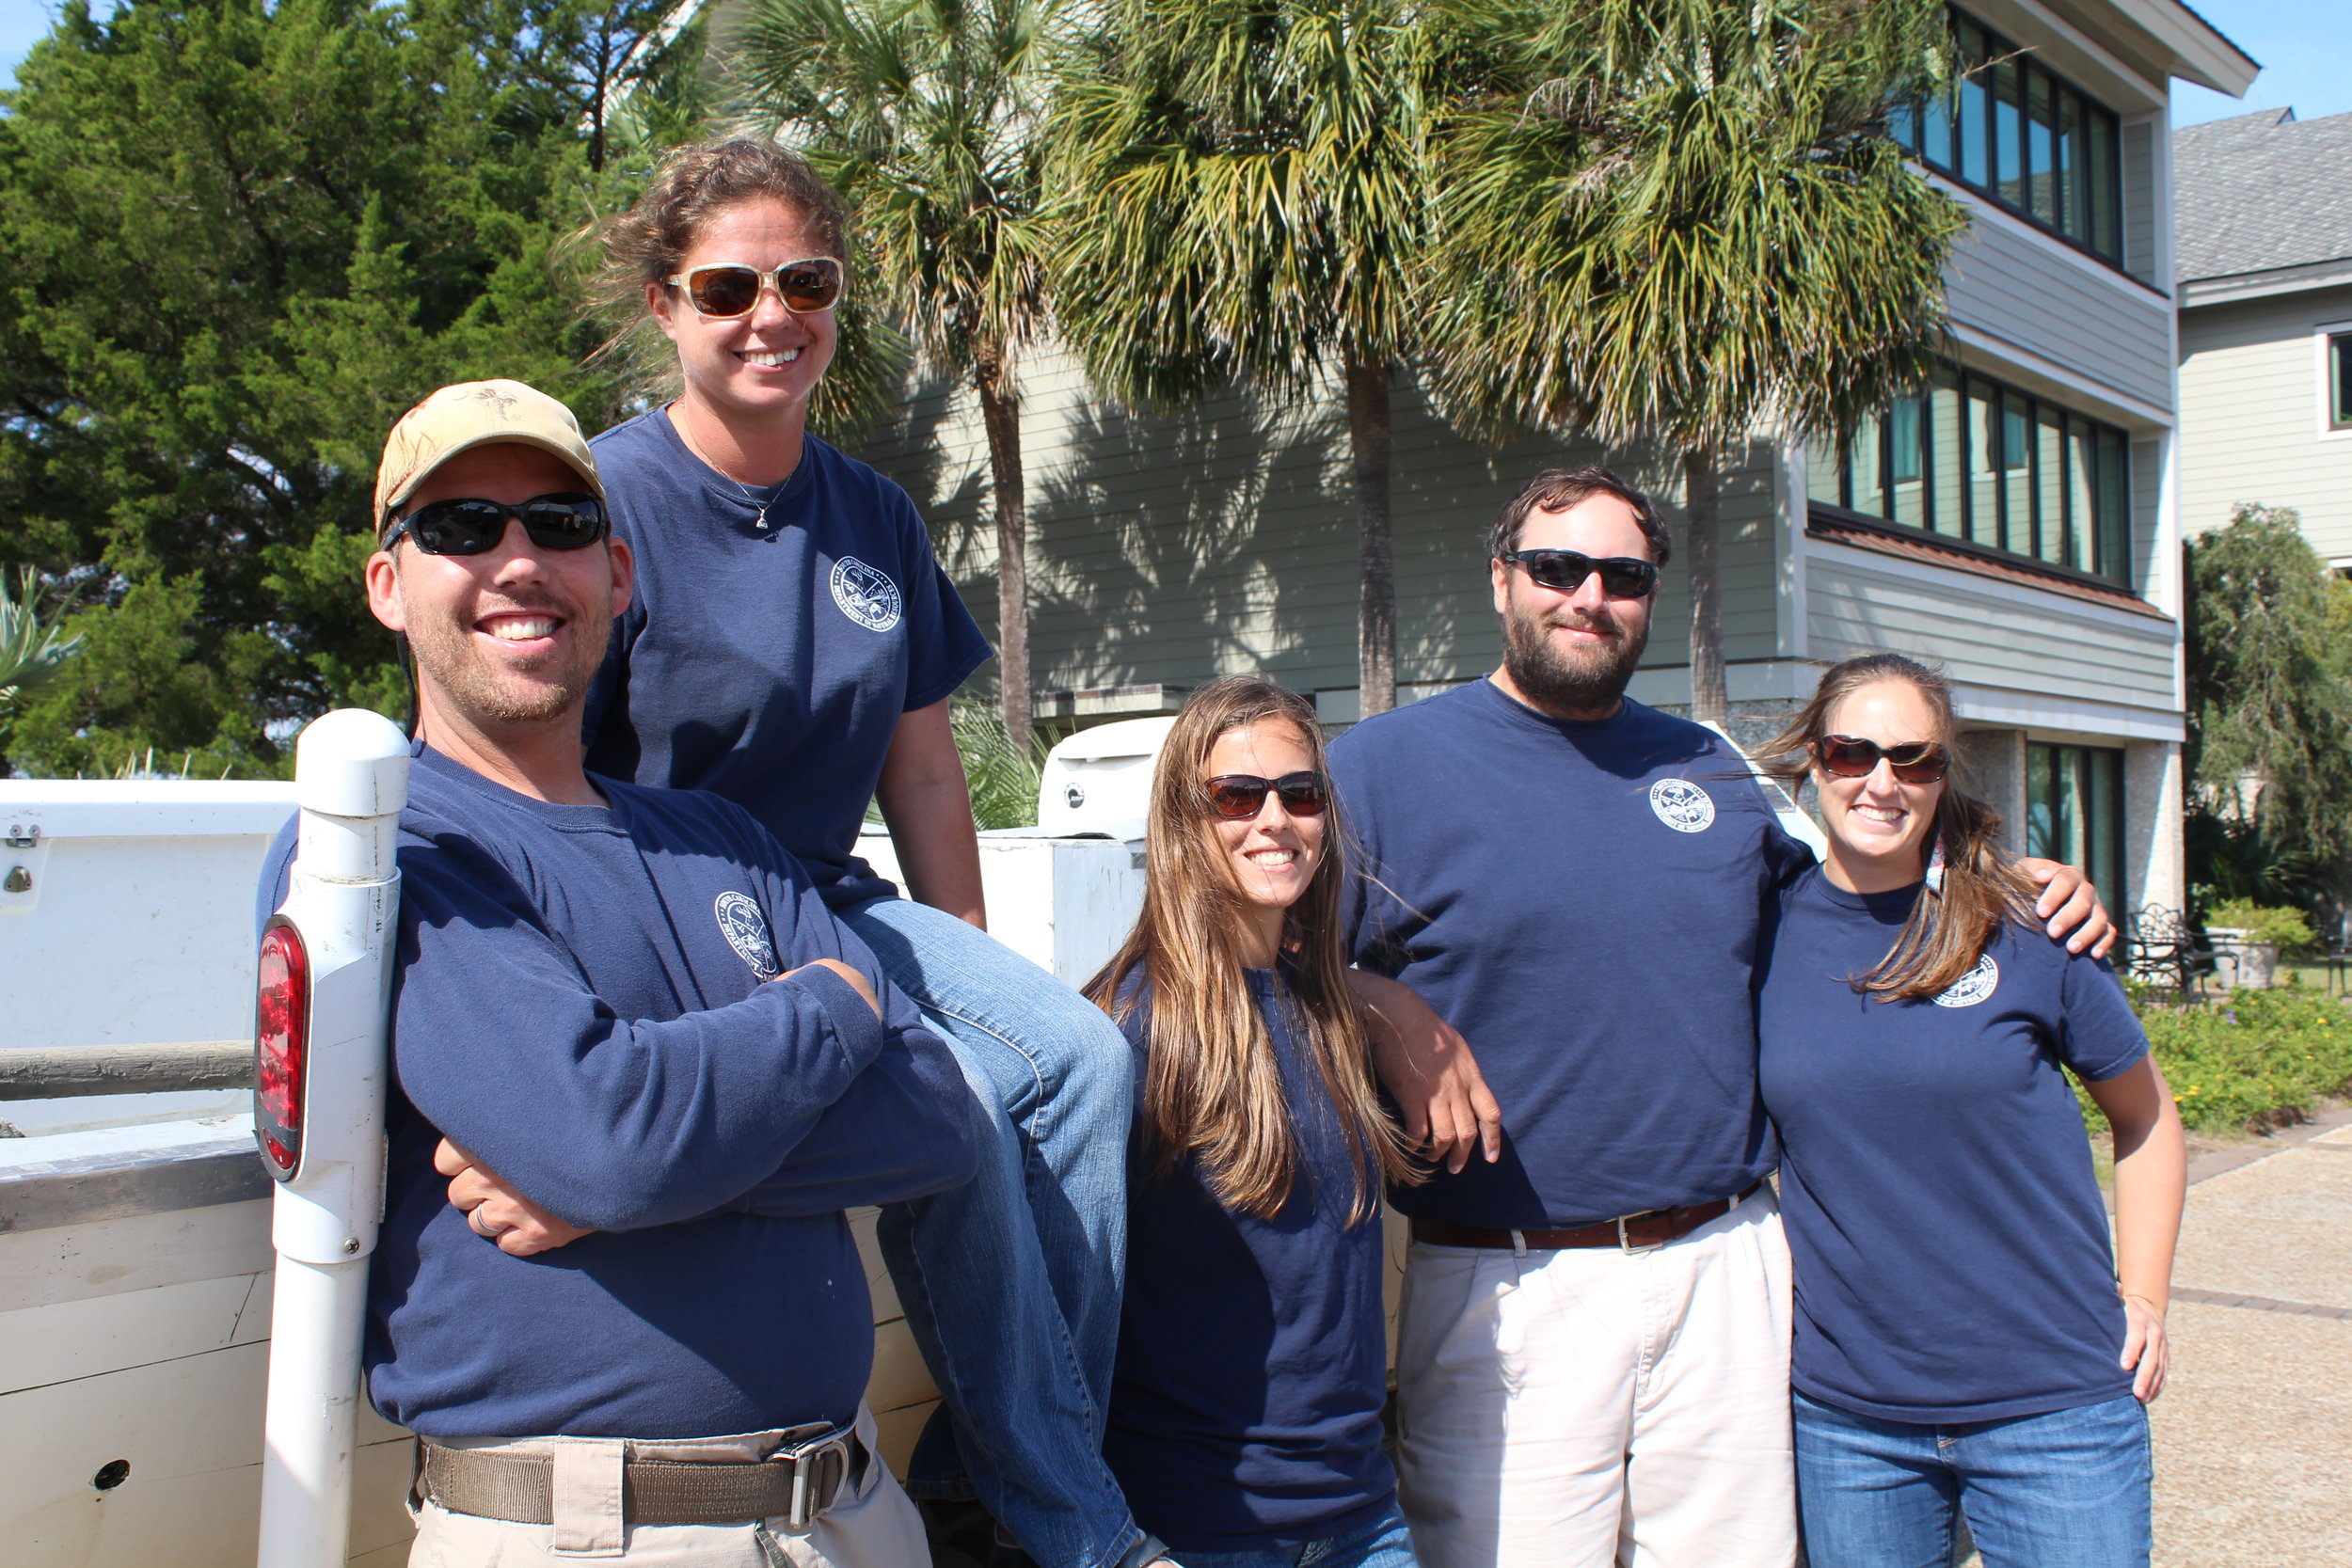 Current and former members of the inshore fisheries lab with one of their trammel net boats: (L-R) Henry Davega, Michelle Taliercio, Liz Vinyard, Jonathan Tucker, and Ashley Shaw. (Photo: E. Weeks/SCDNR)